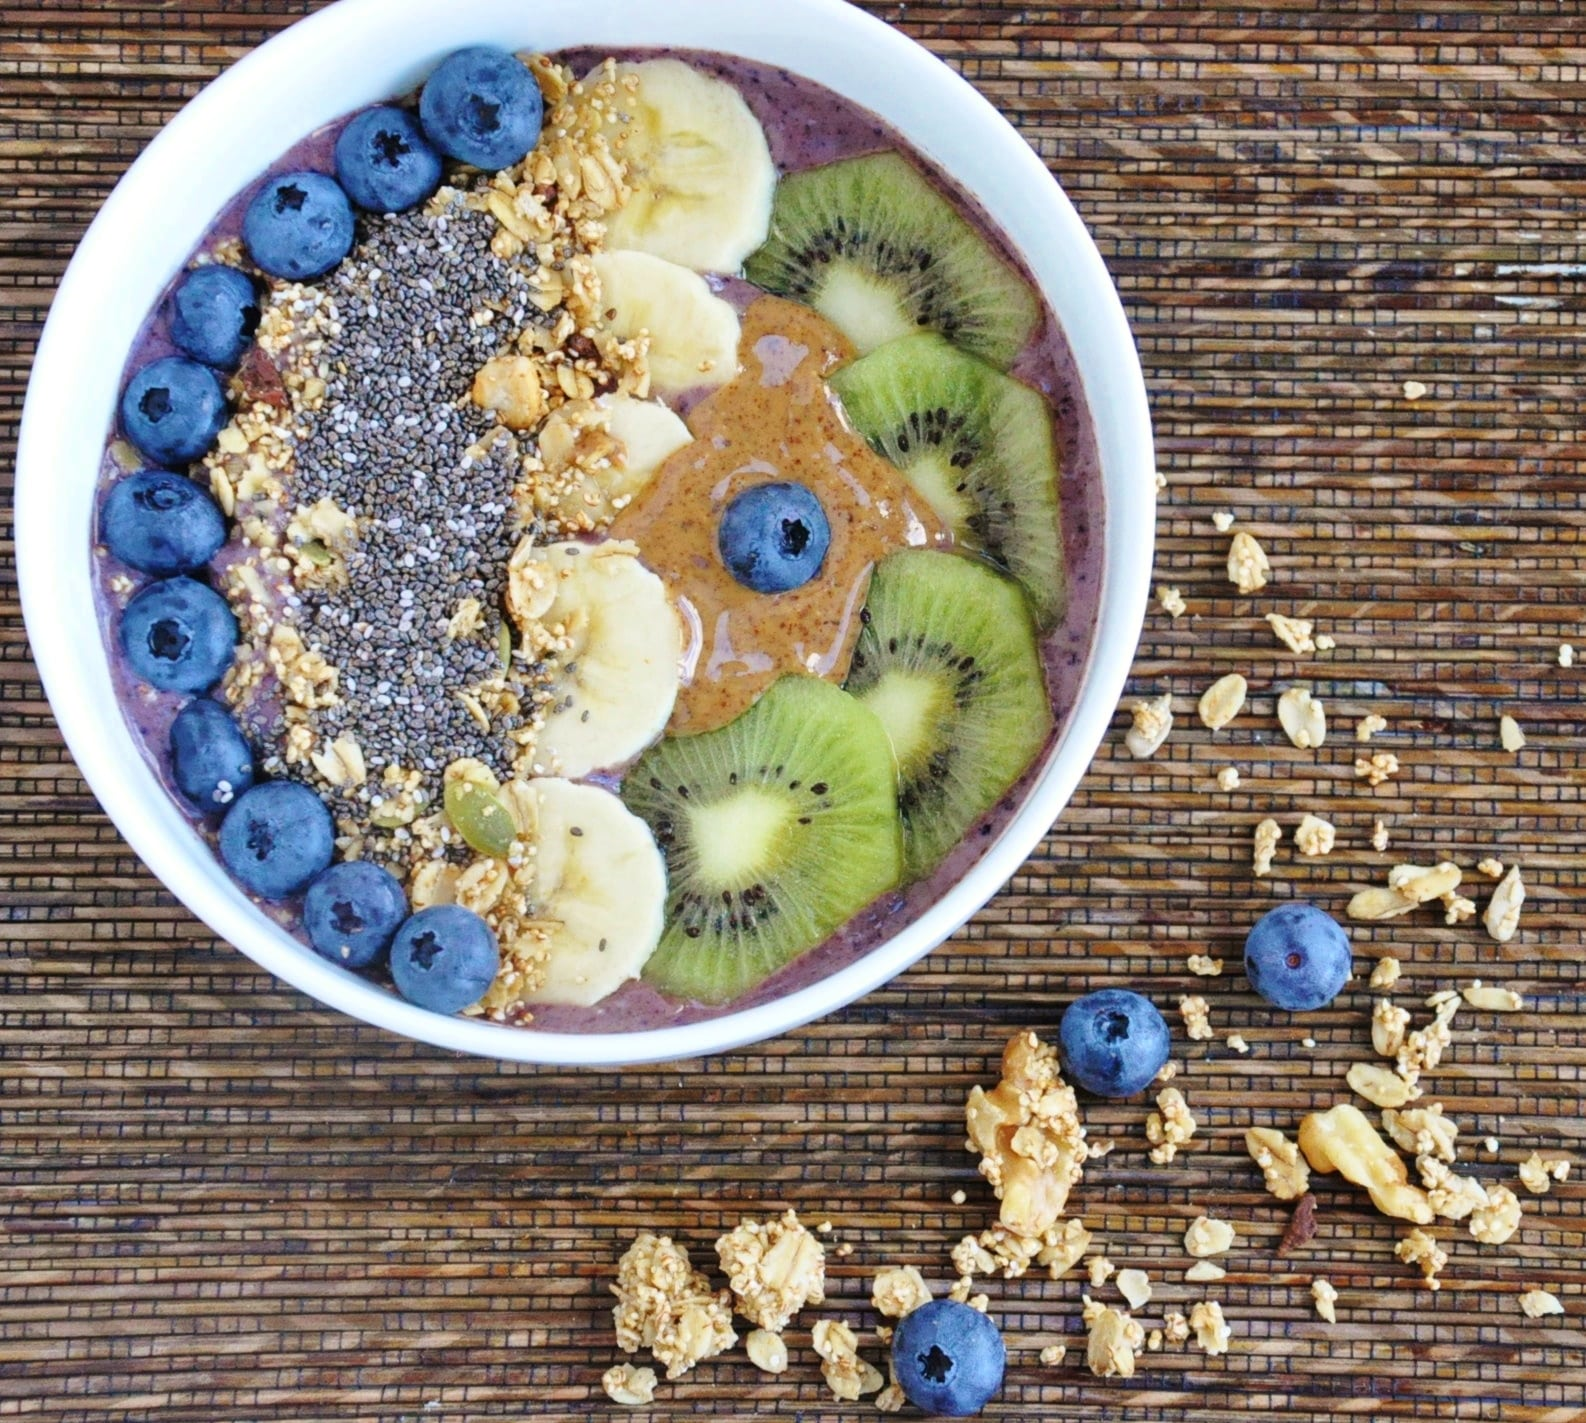 Blueberry Banana Acai Bowl (7)